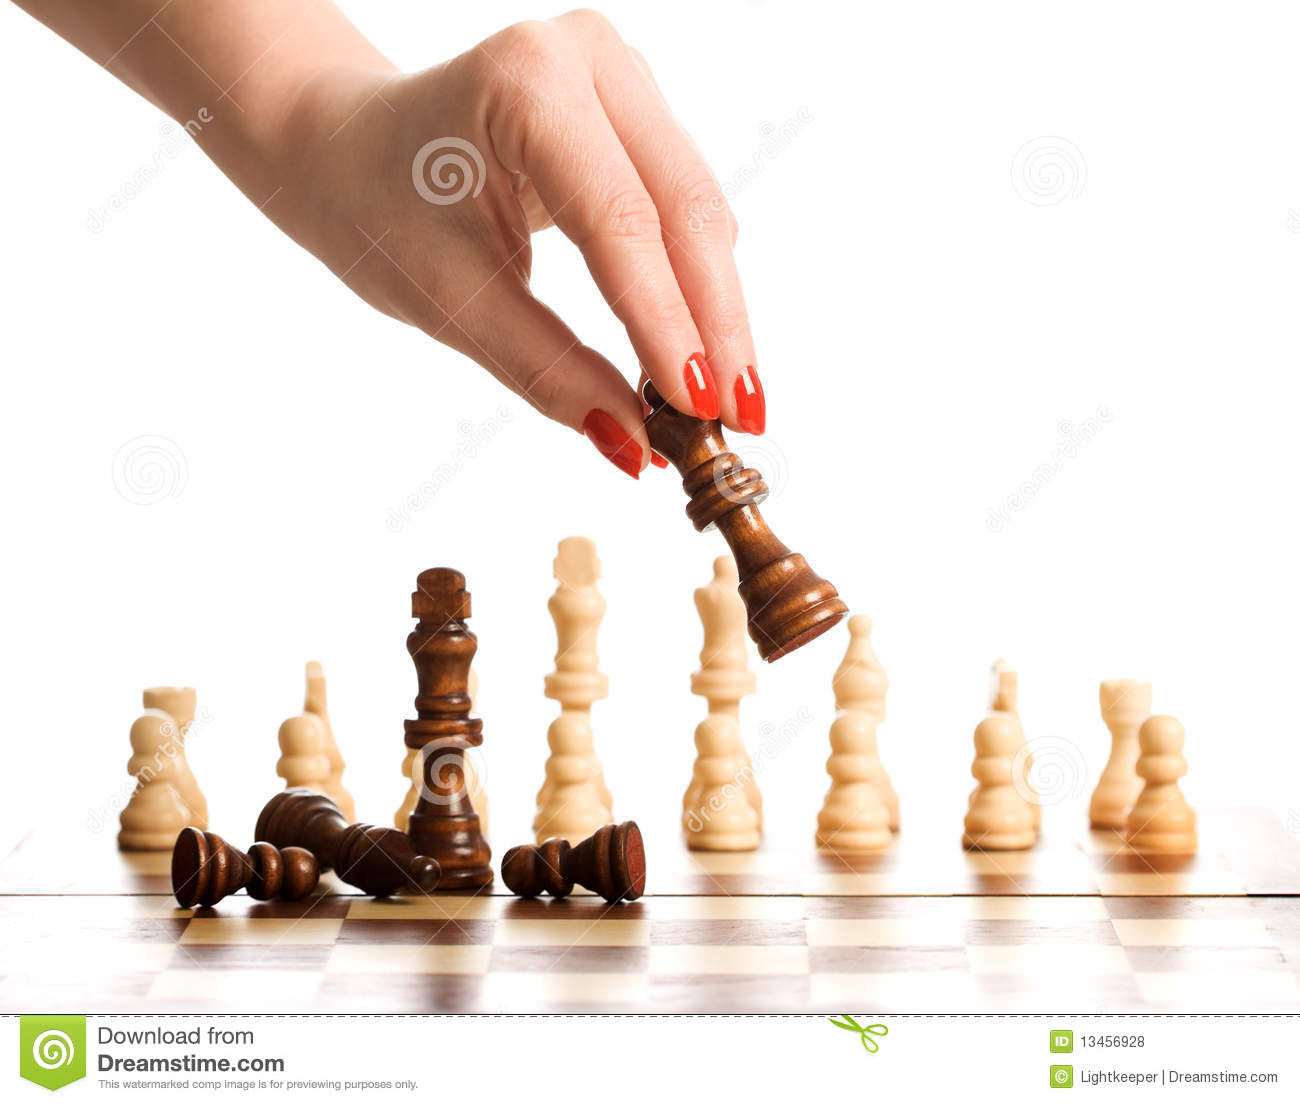 chess-woman-hand-13456928